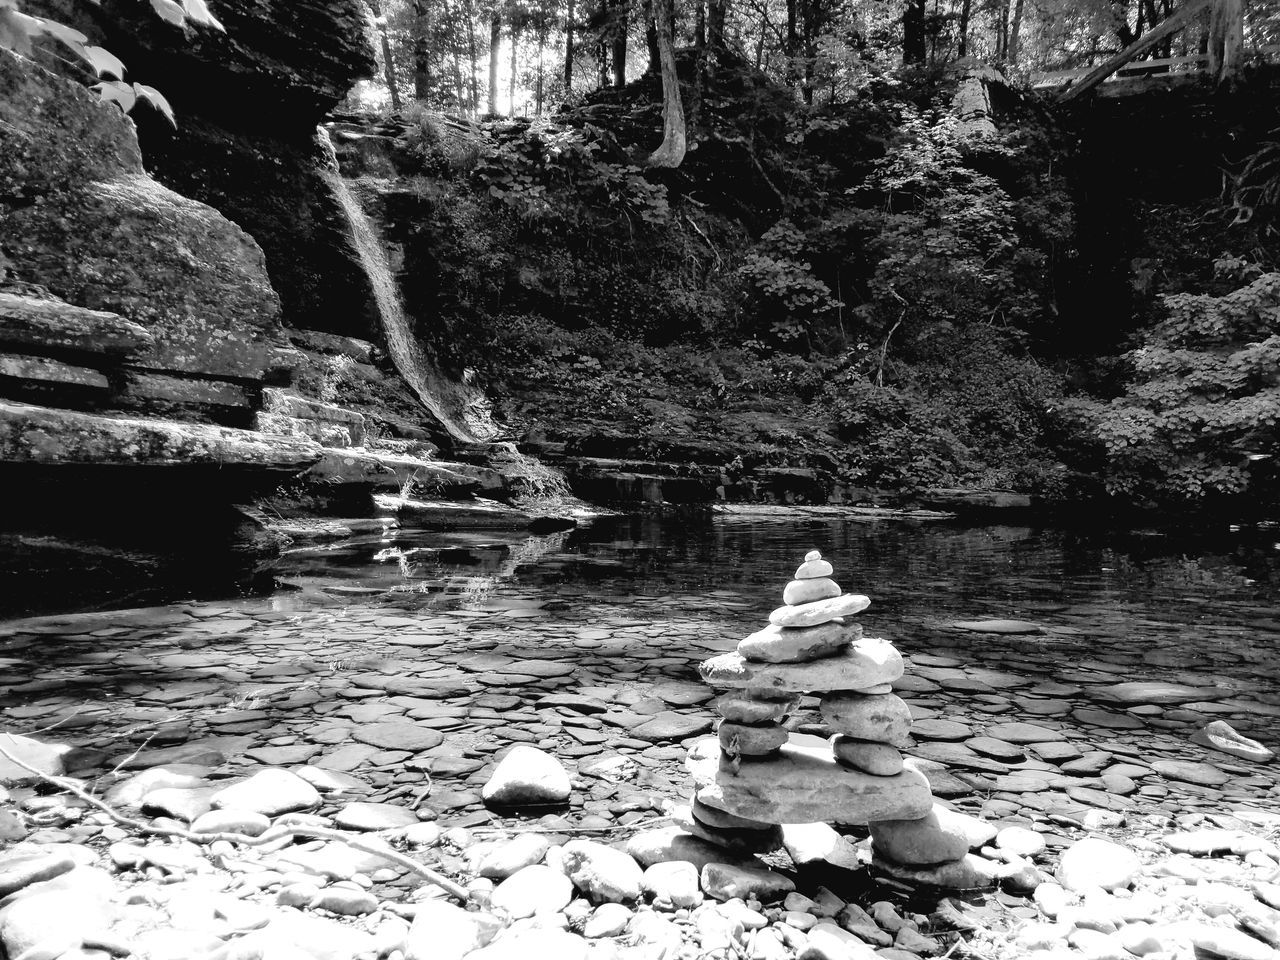 rock - object, nature, water, full length, outdoors, growth, day, beauty in nature, no people, tree